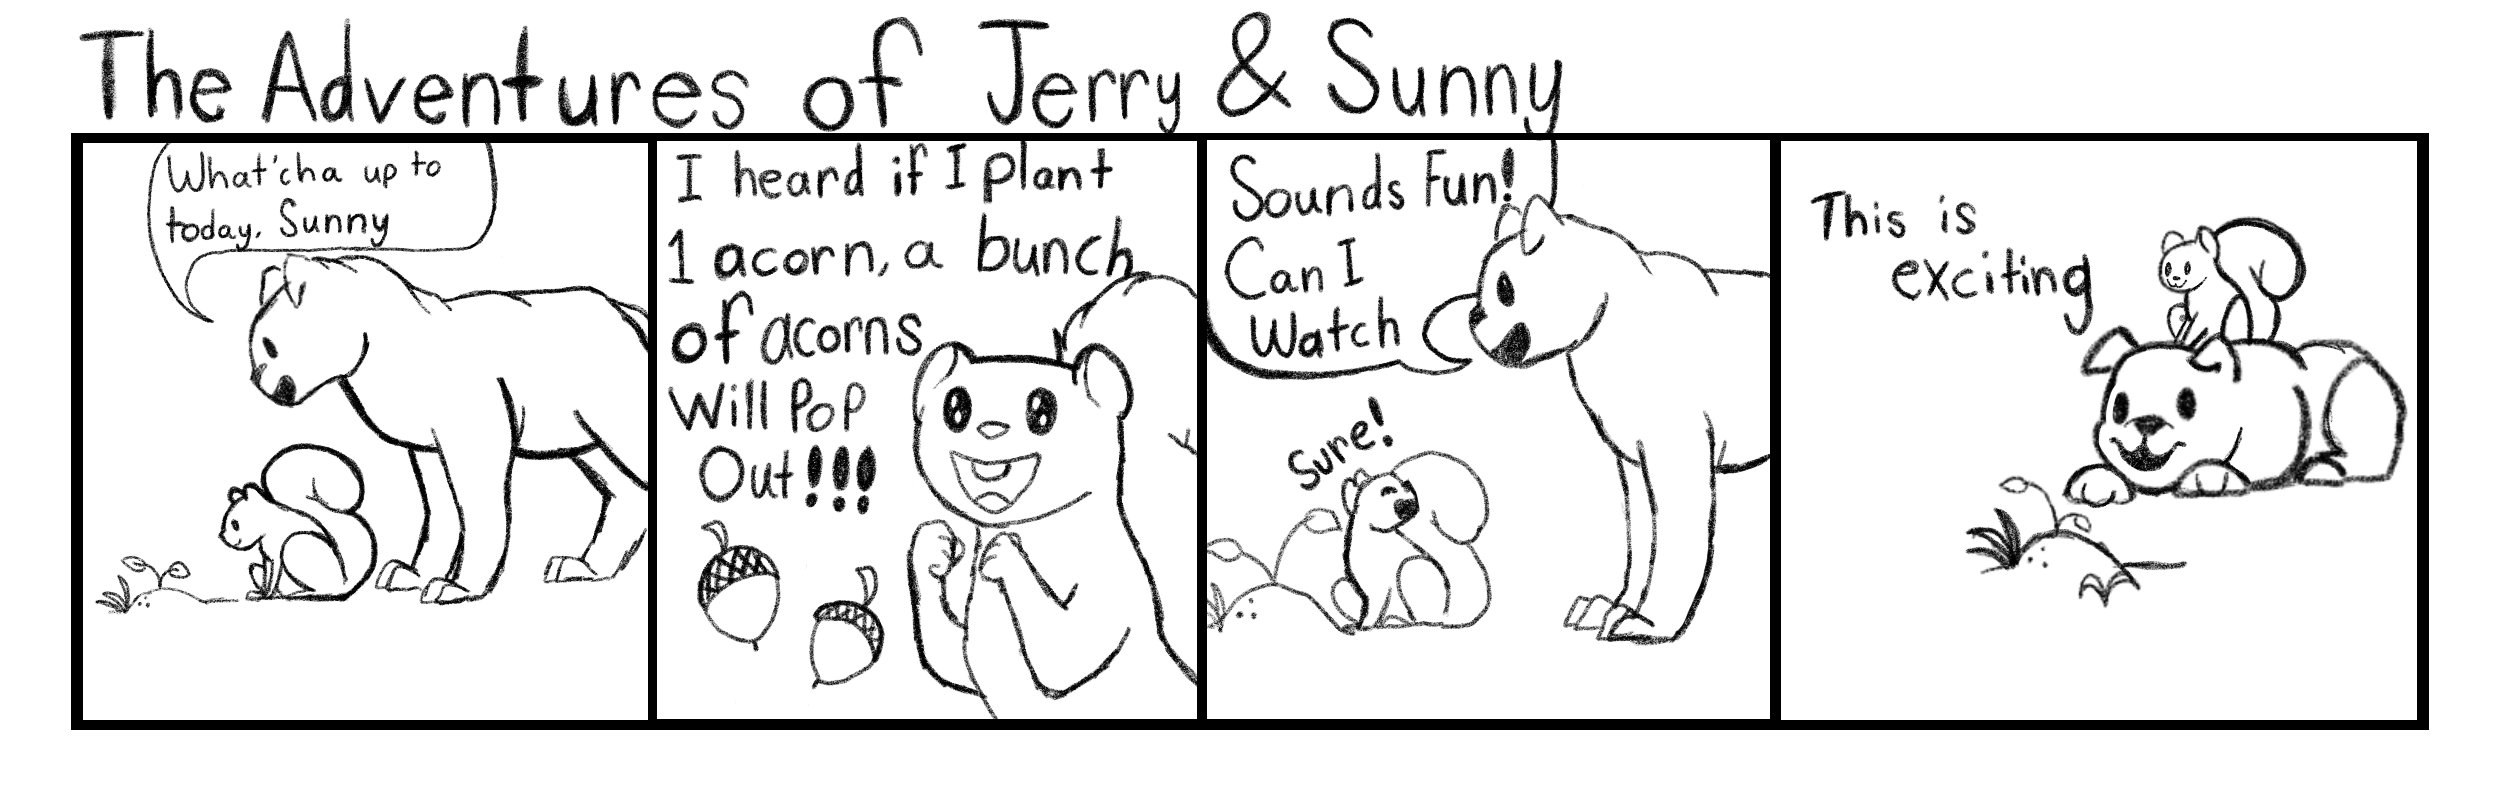 Adventures of Jerry & Sunny 09/30/2021